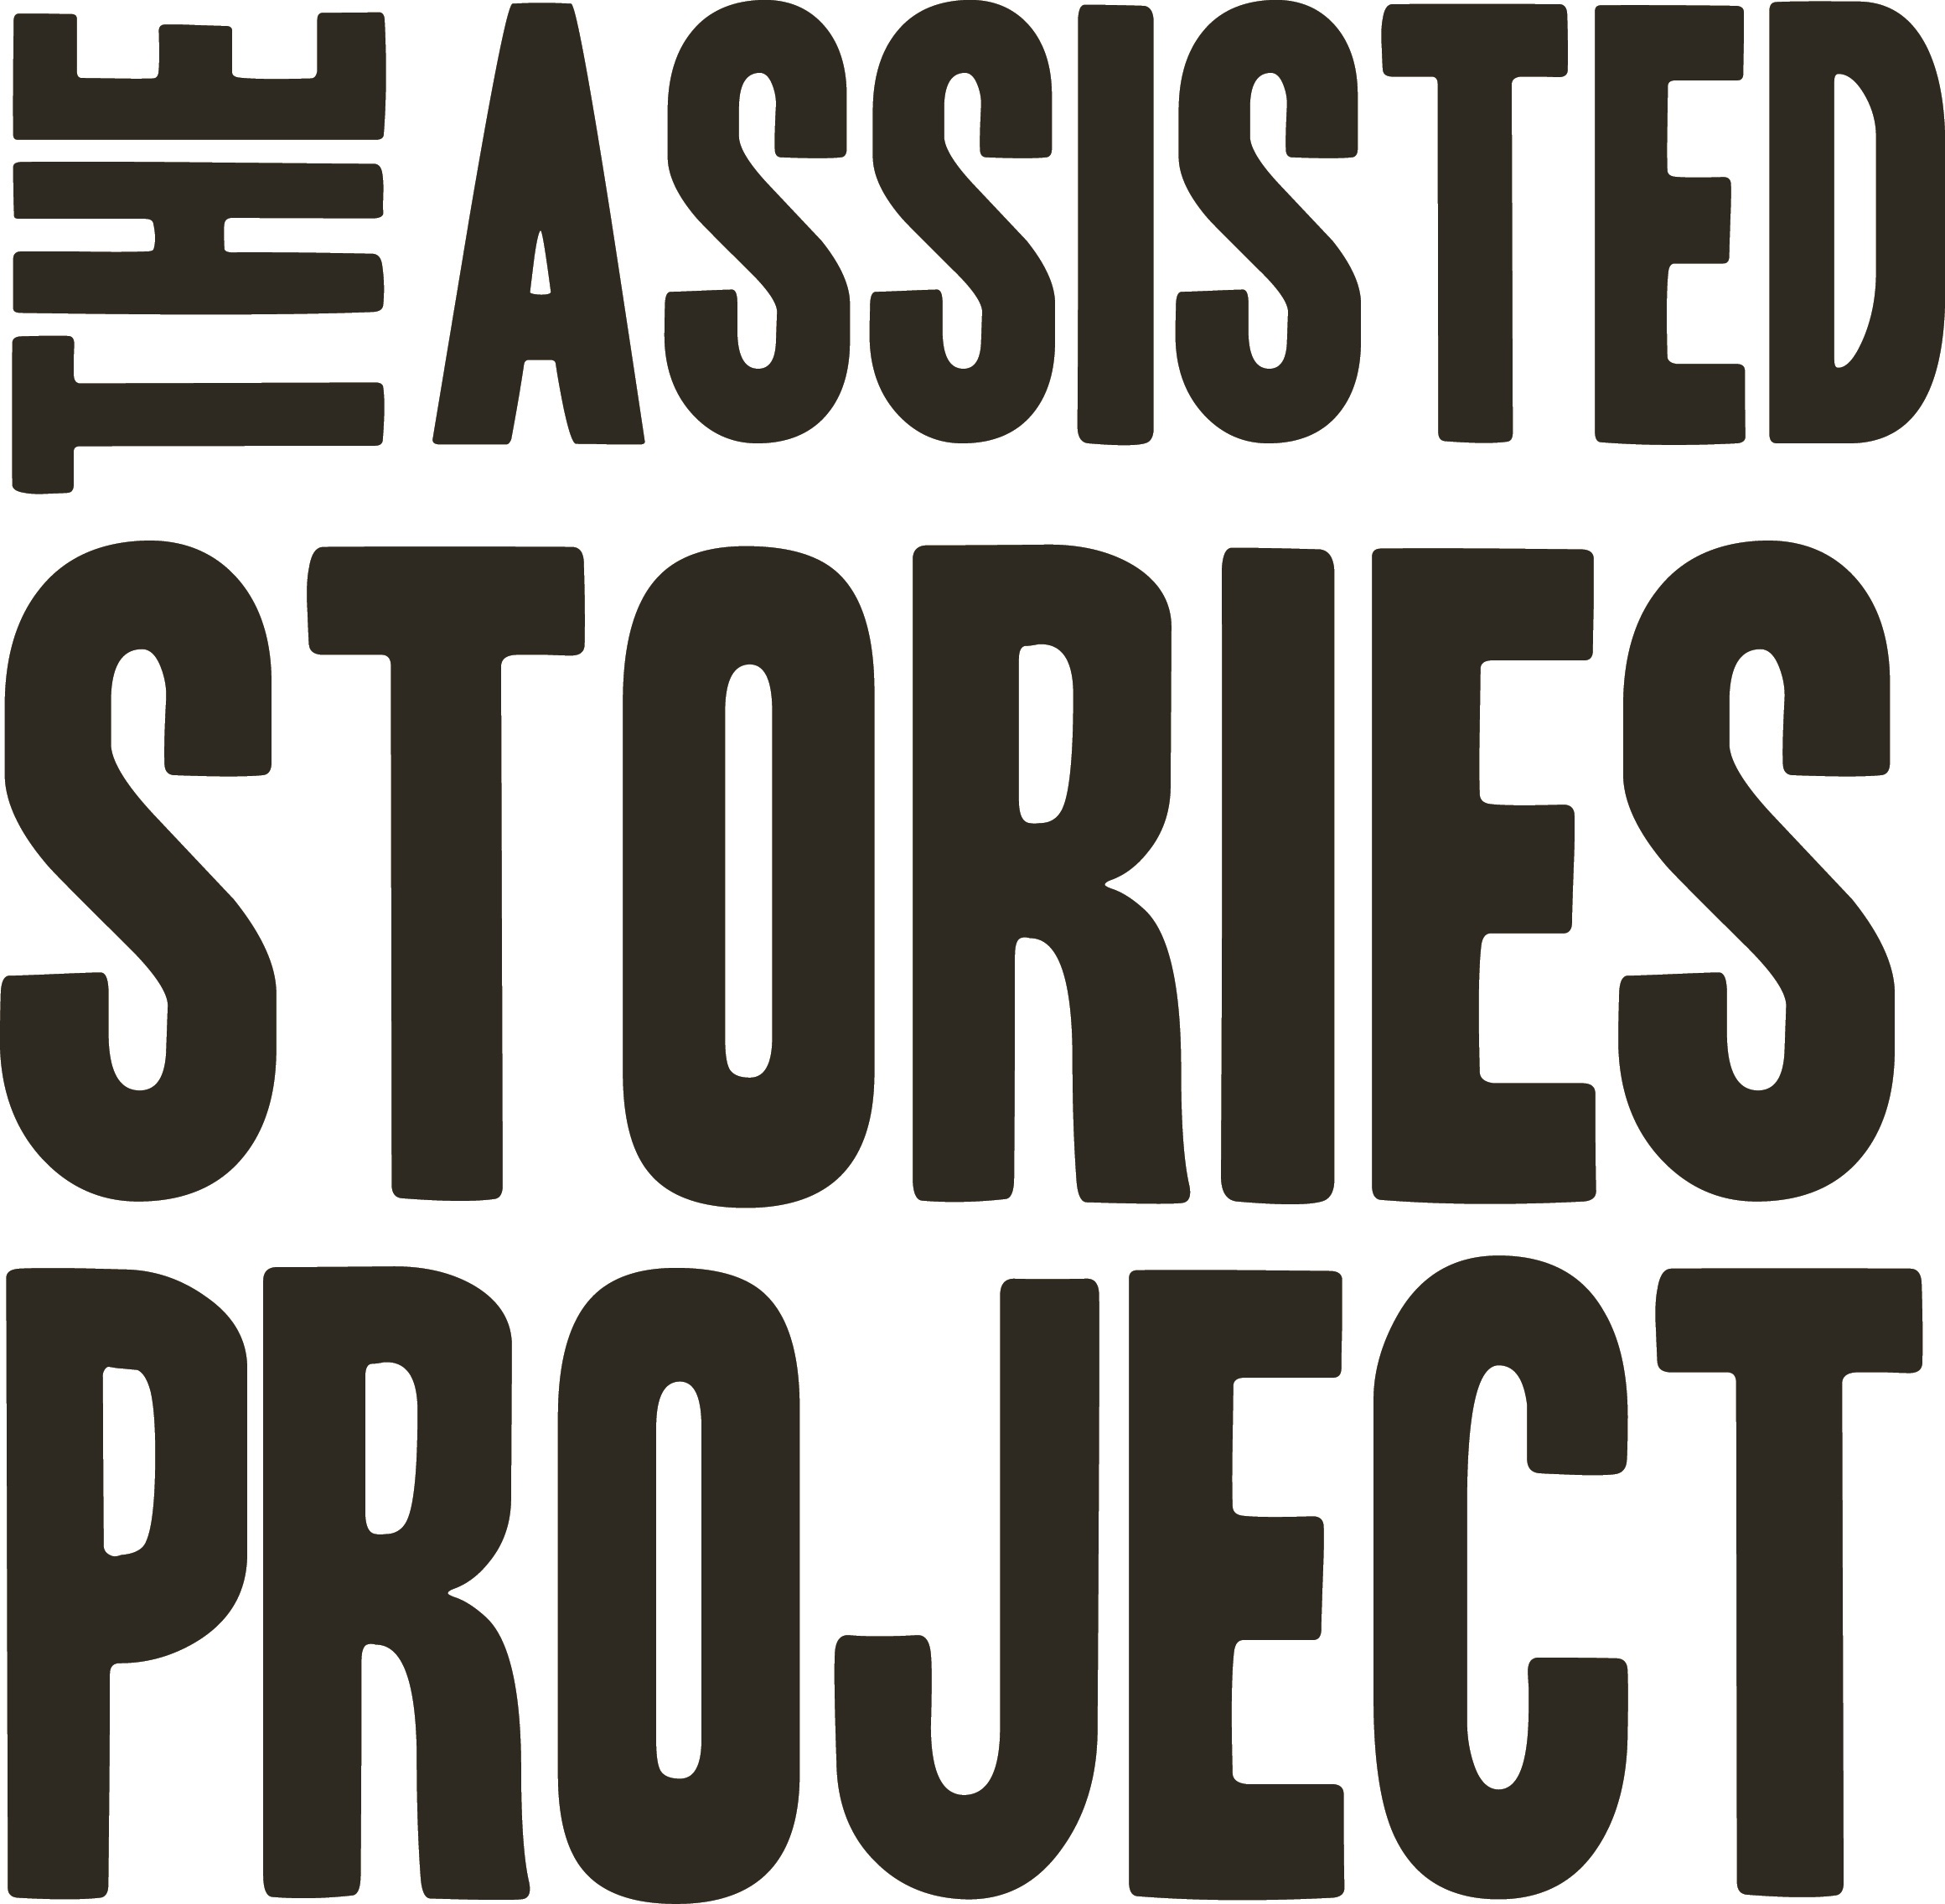 the assisted stories project the assisted stories project is a documentary web series of short visual essays featuring residents of the south over 60 who live in a variety of